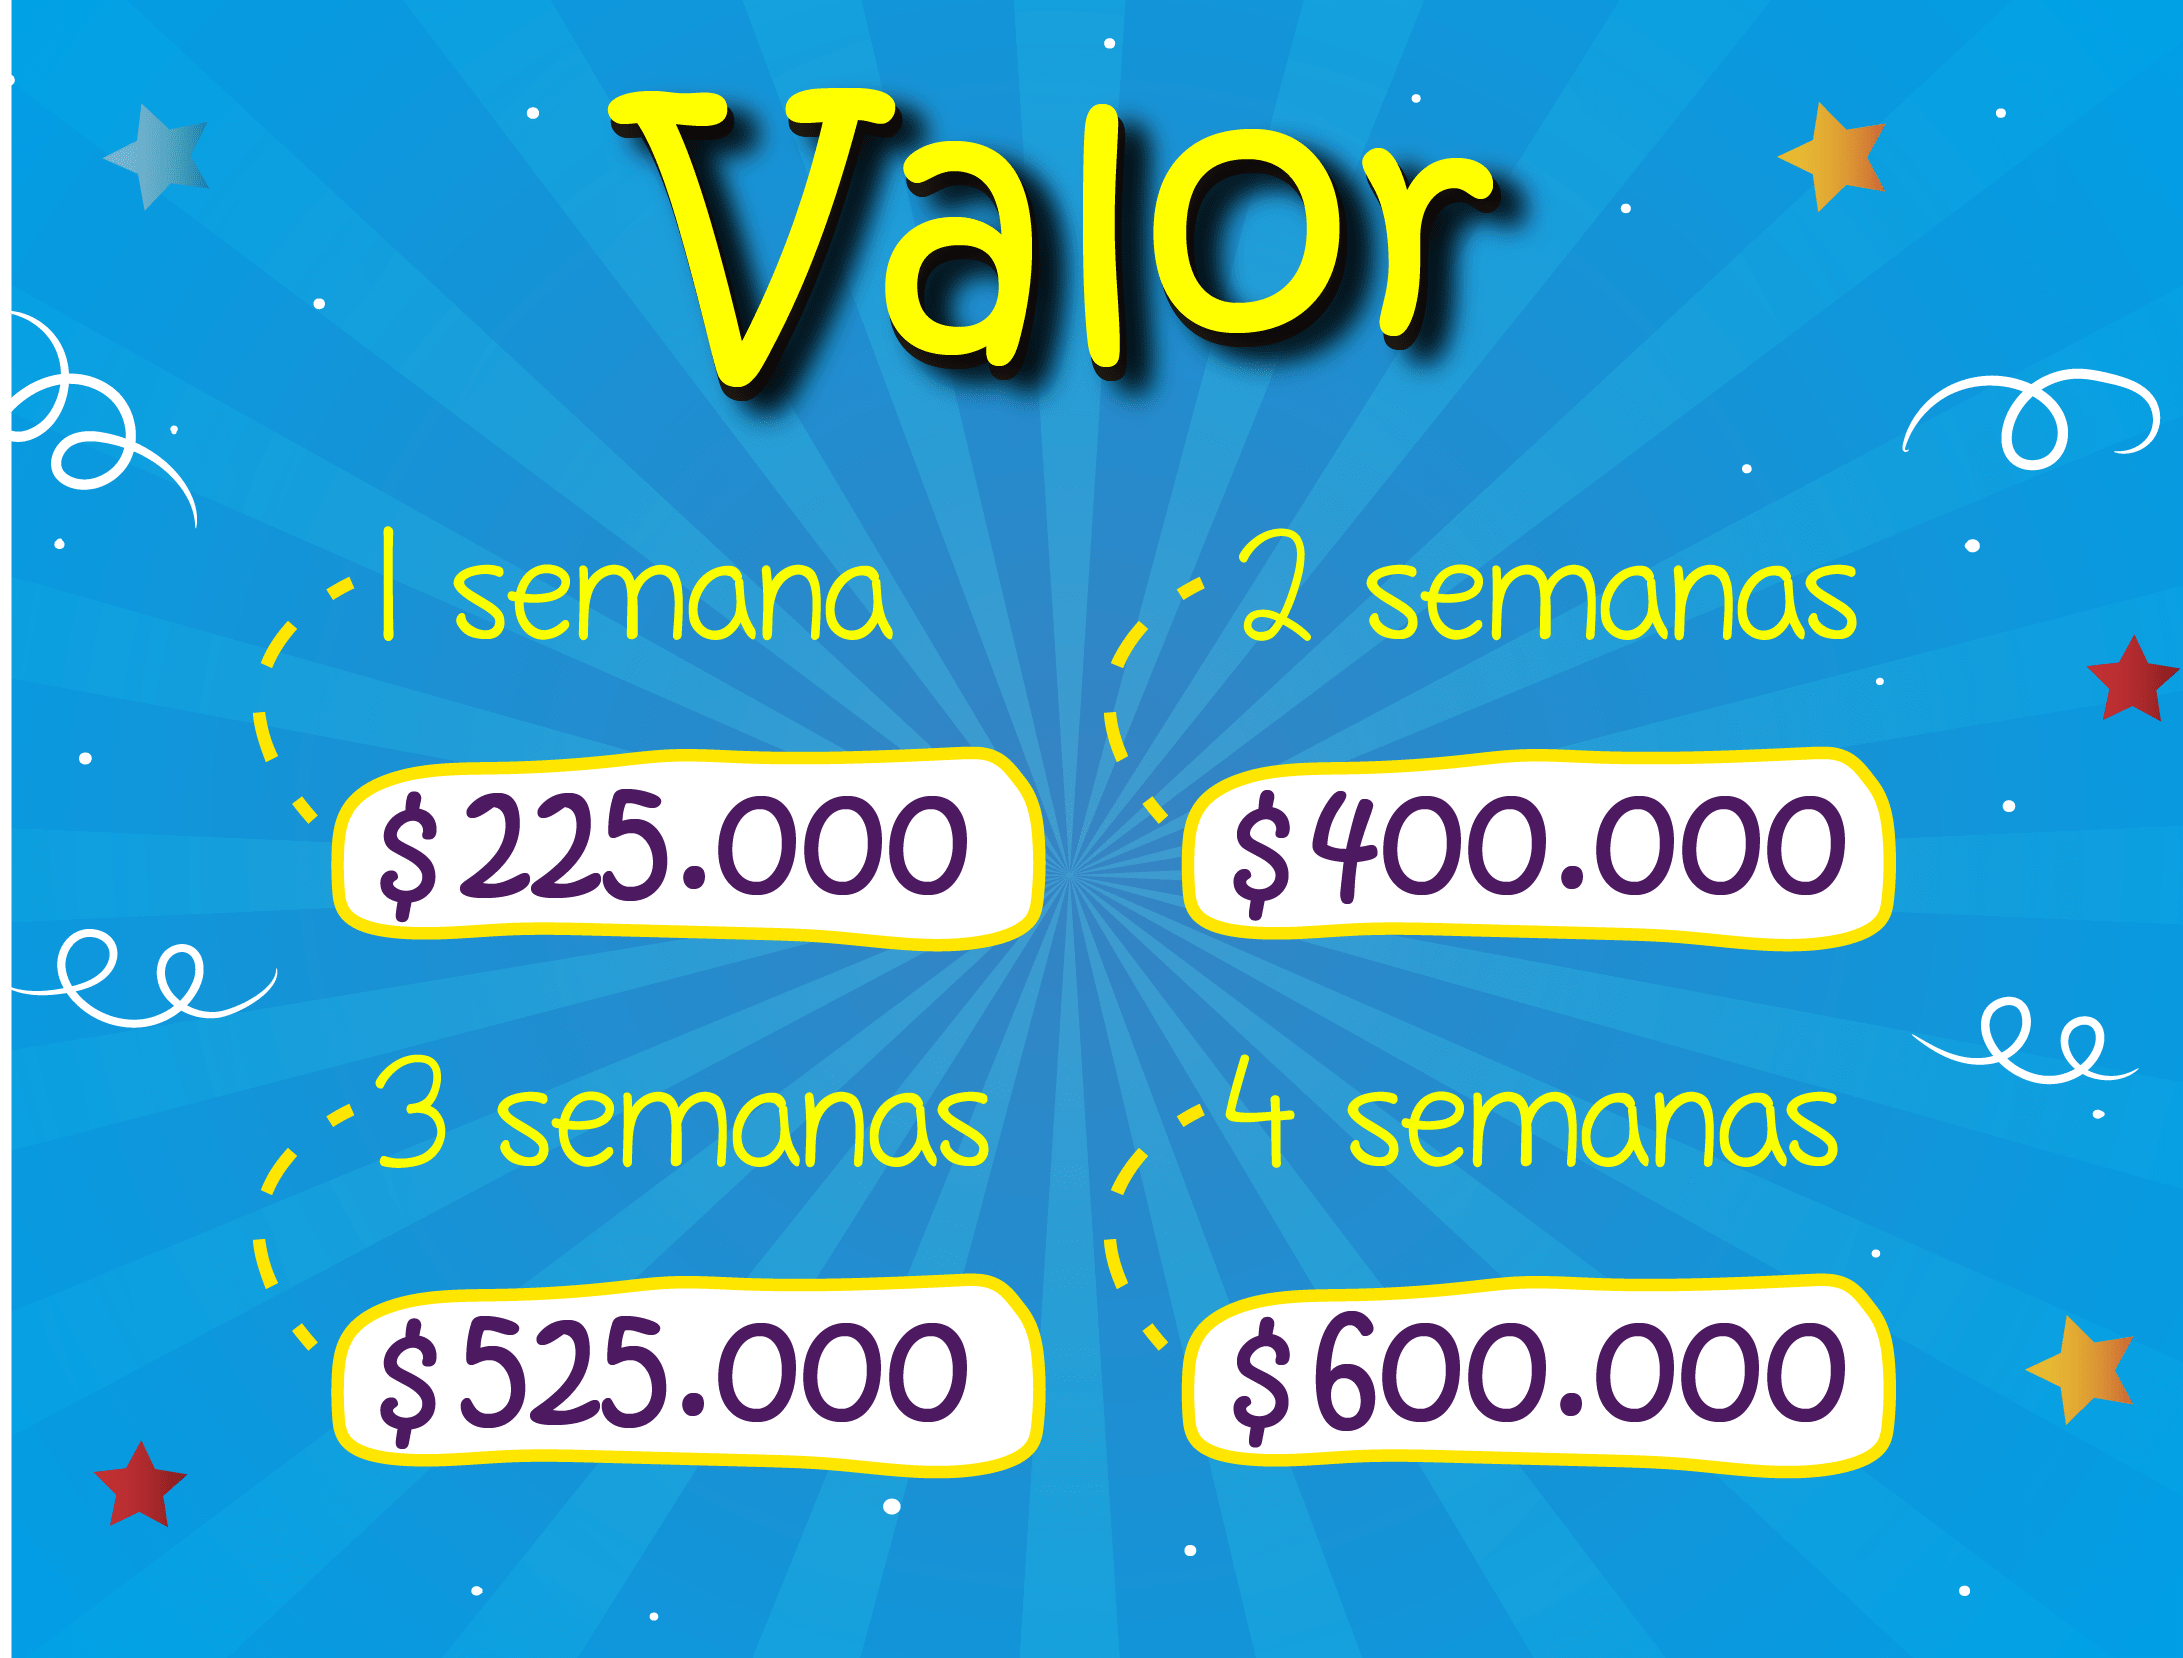 valor-vacaciones-recreativas.png